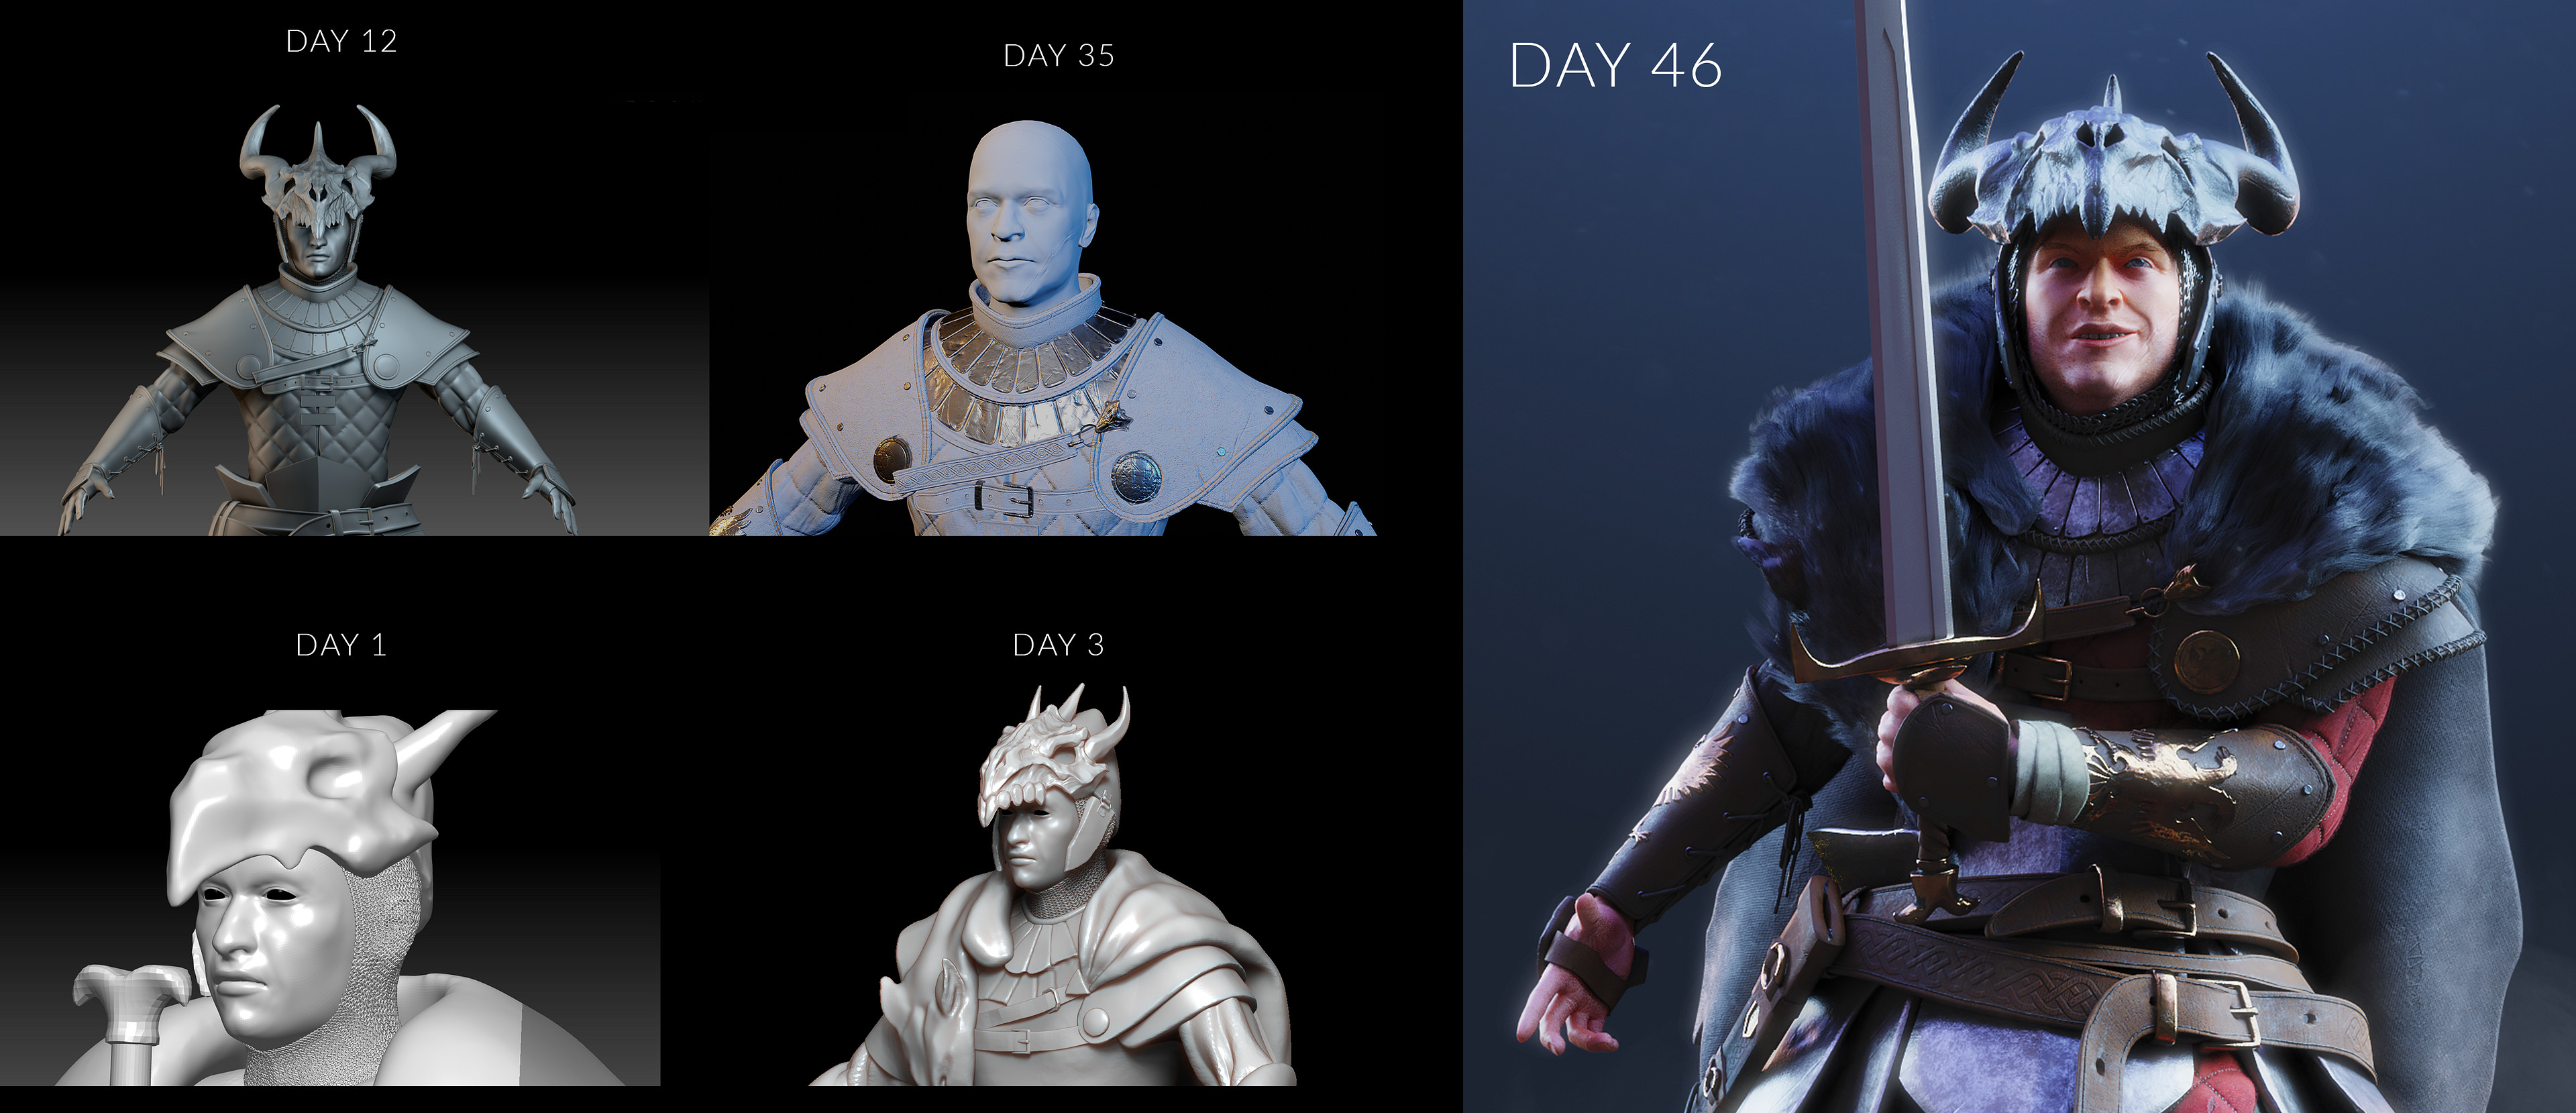 You can see the challenge thread with full WIP here: https://www.artstation.com/contests/the-legend-of-king-arthur/challenges/68/submissions/45860